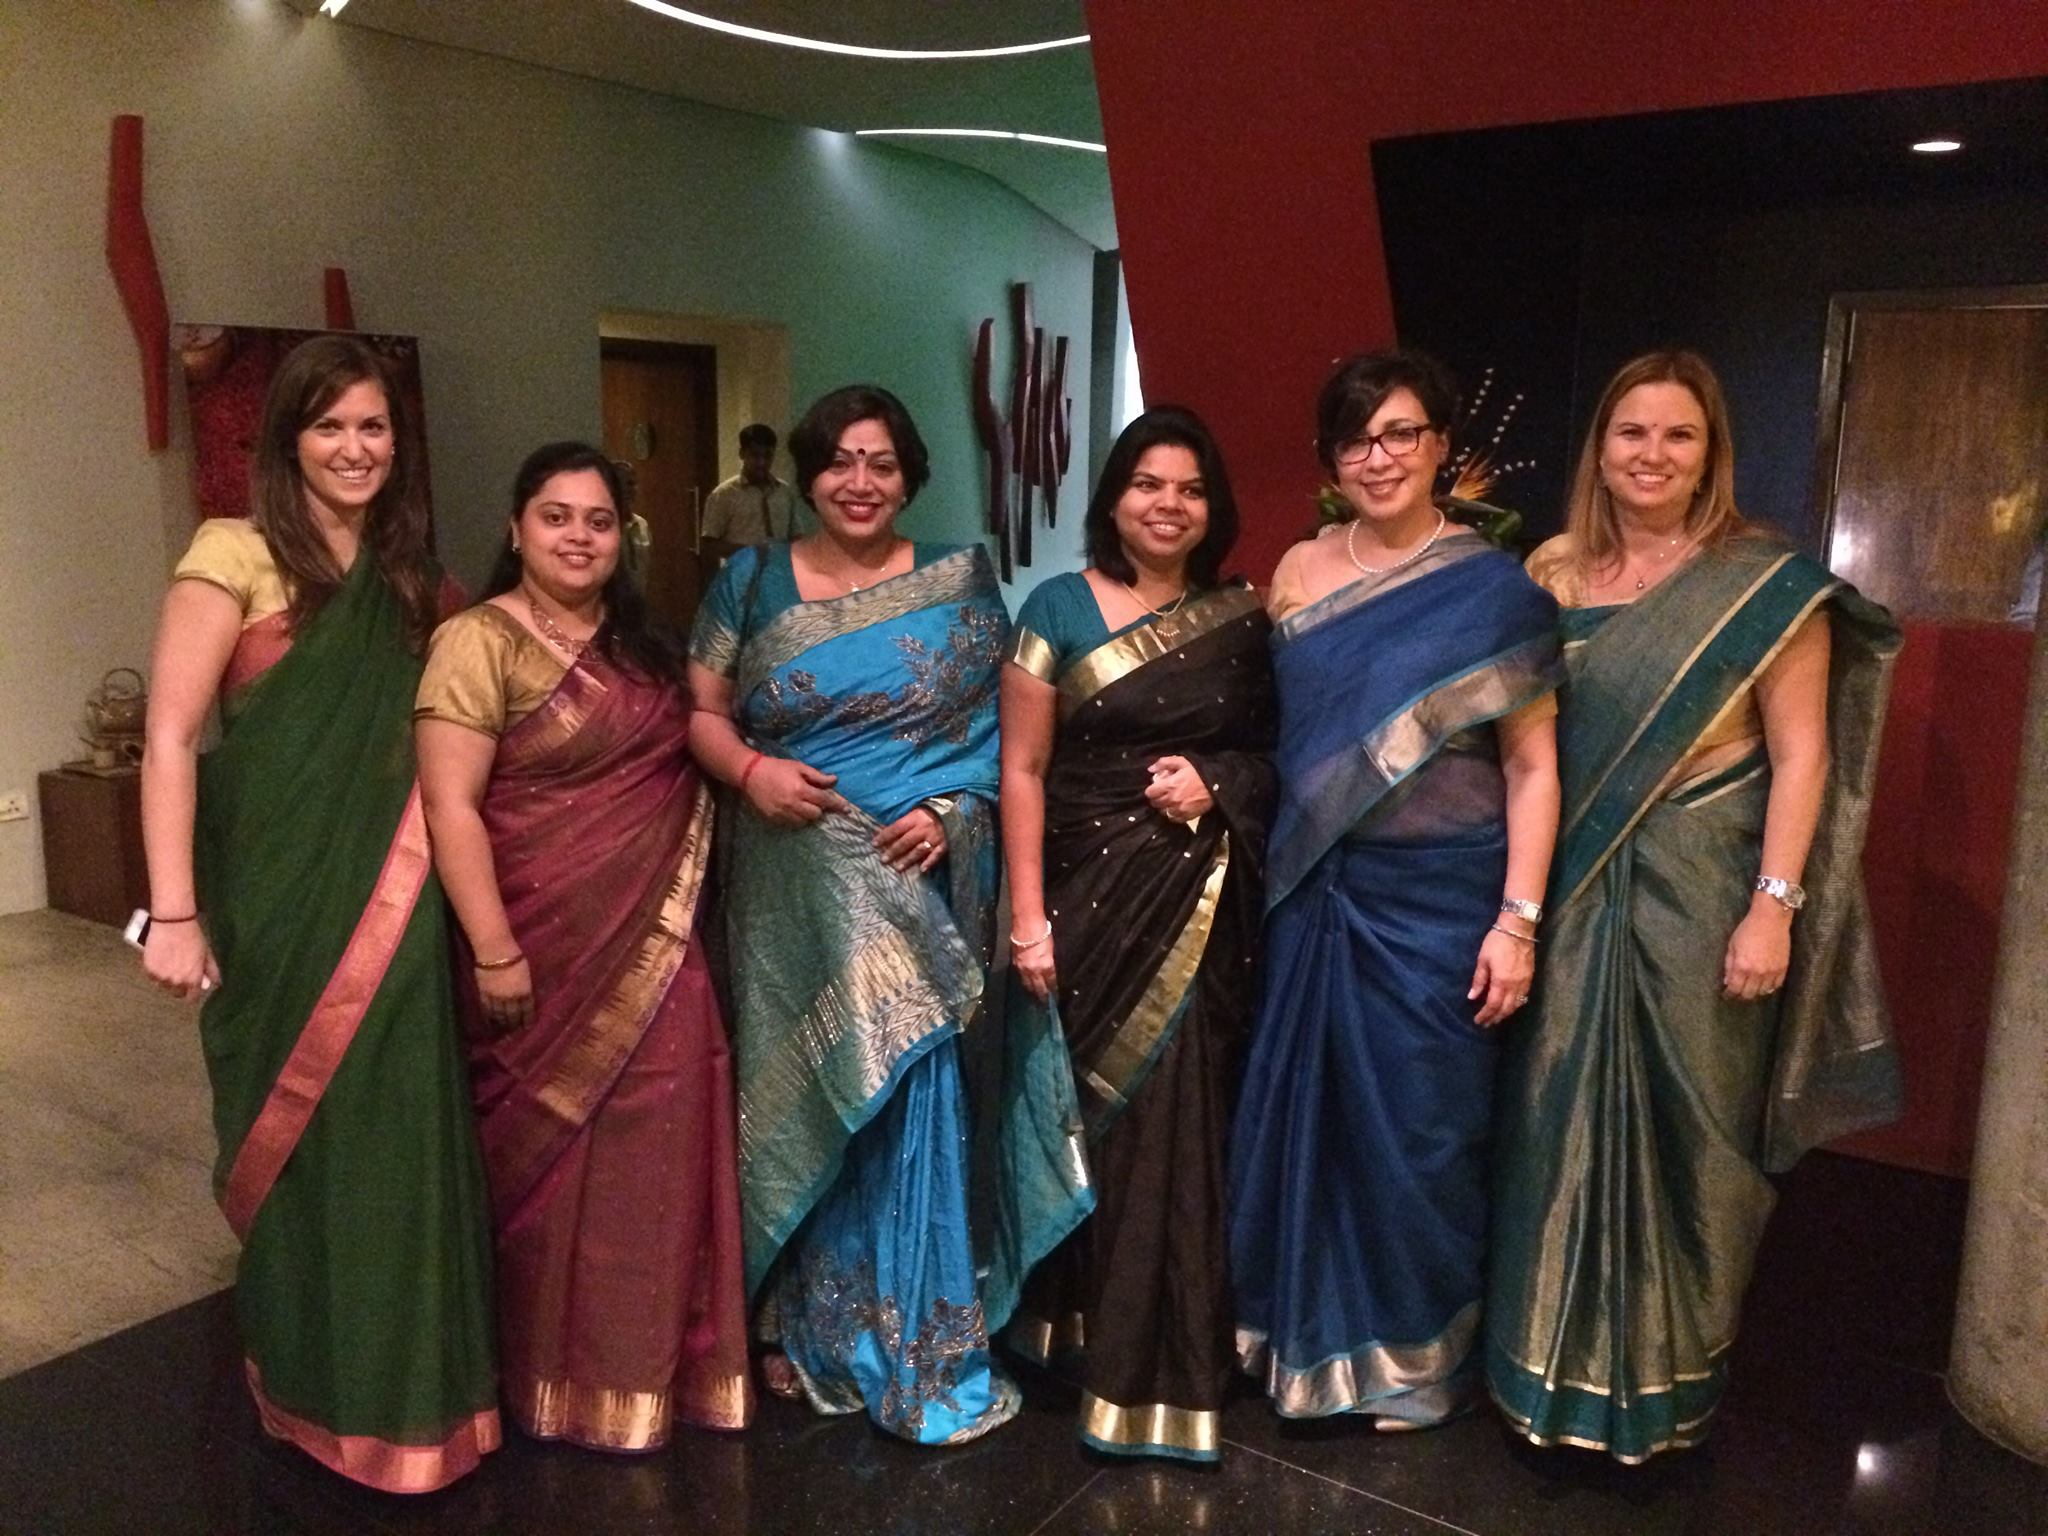 Me, second from right, in India with my Accenture team members and colleagues.